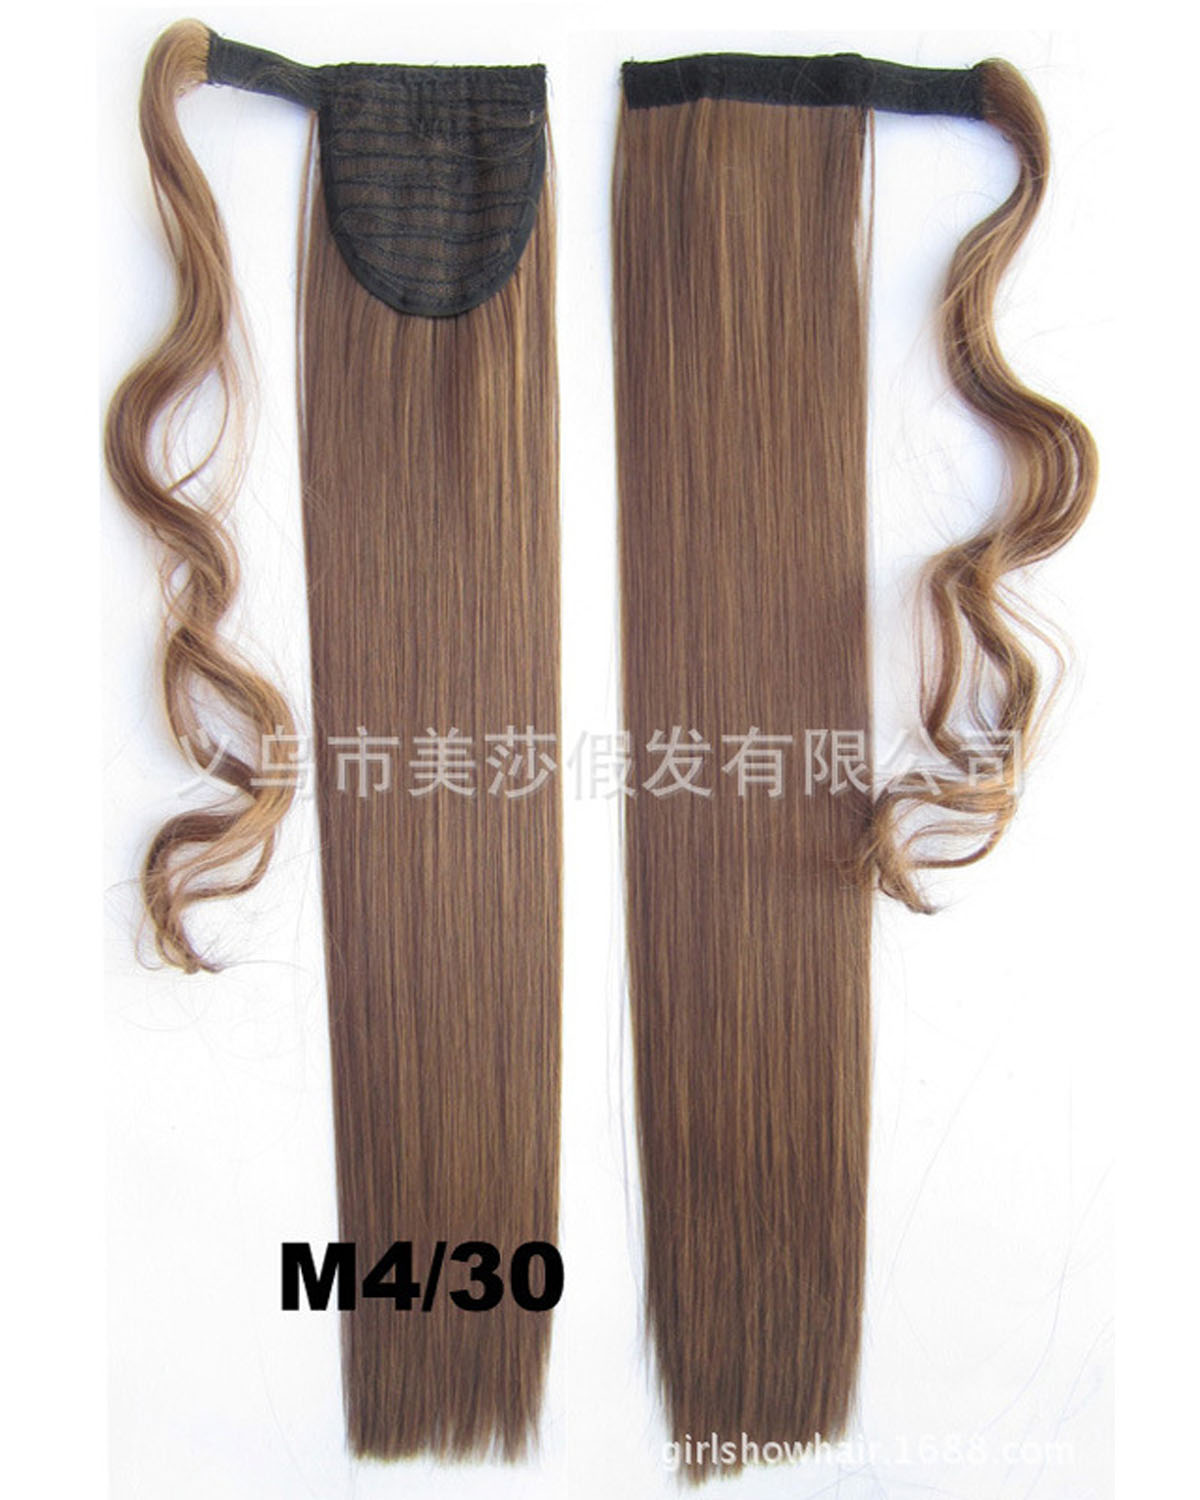 22 Inch Women Modern Straight and Long Wrap Around Synthetic Hair Ponytail M4/30#